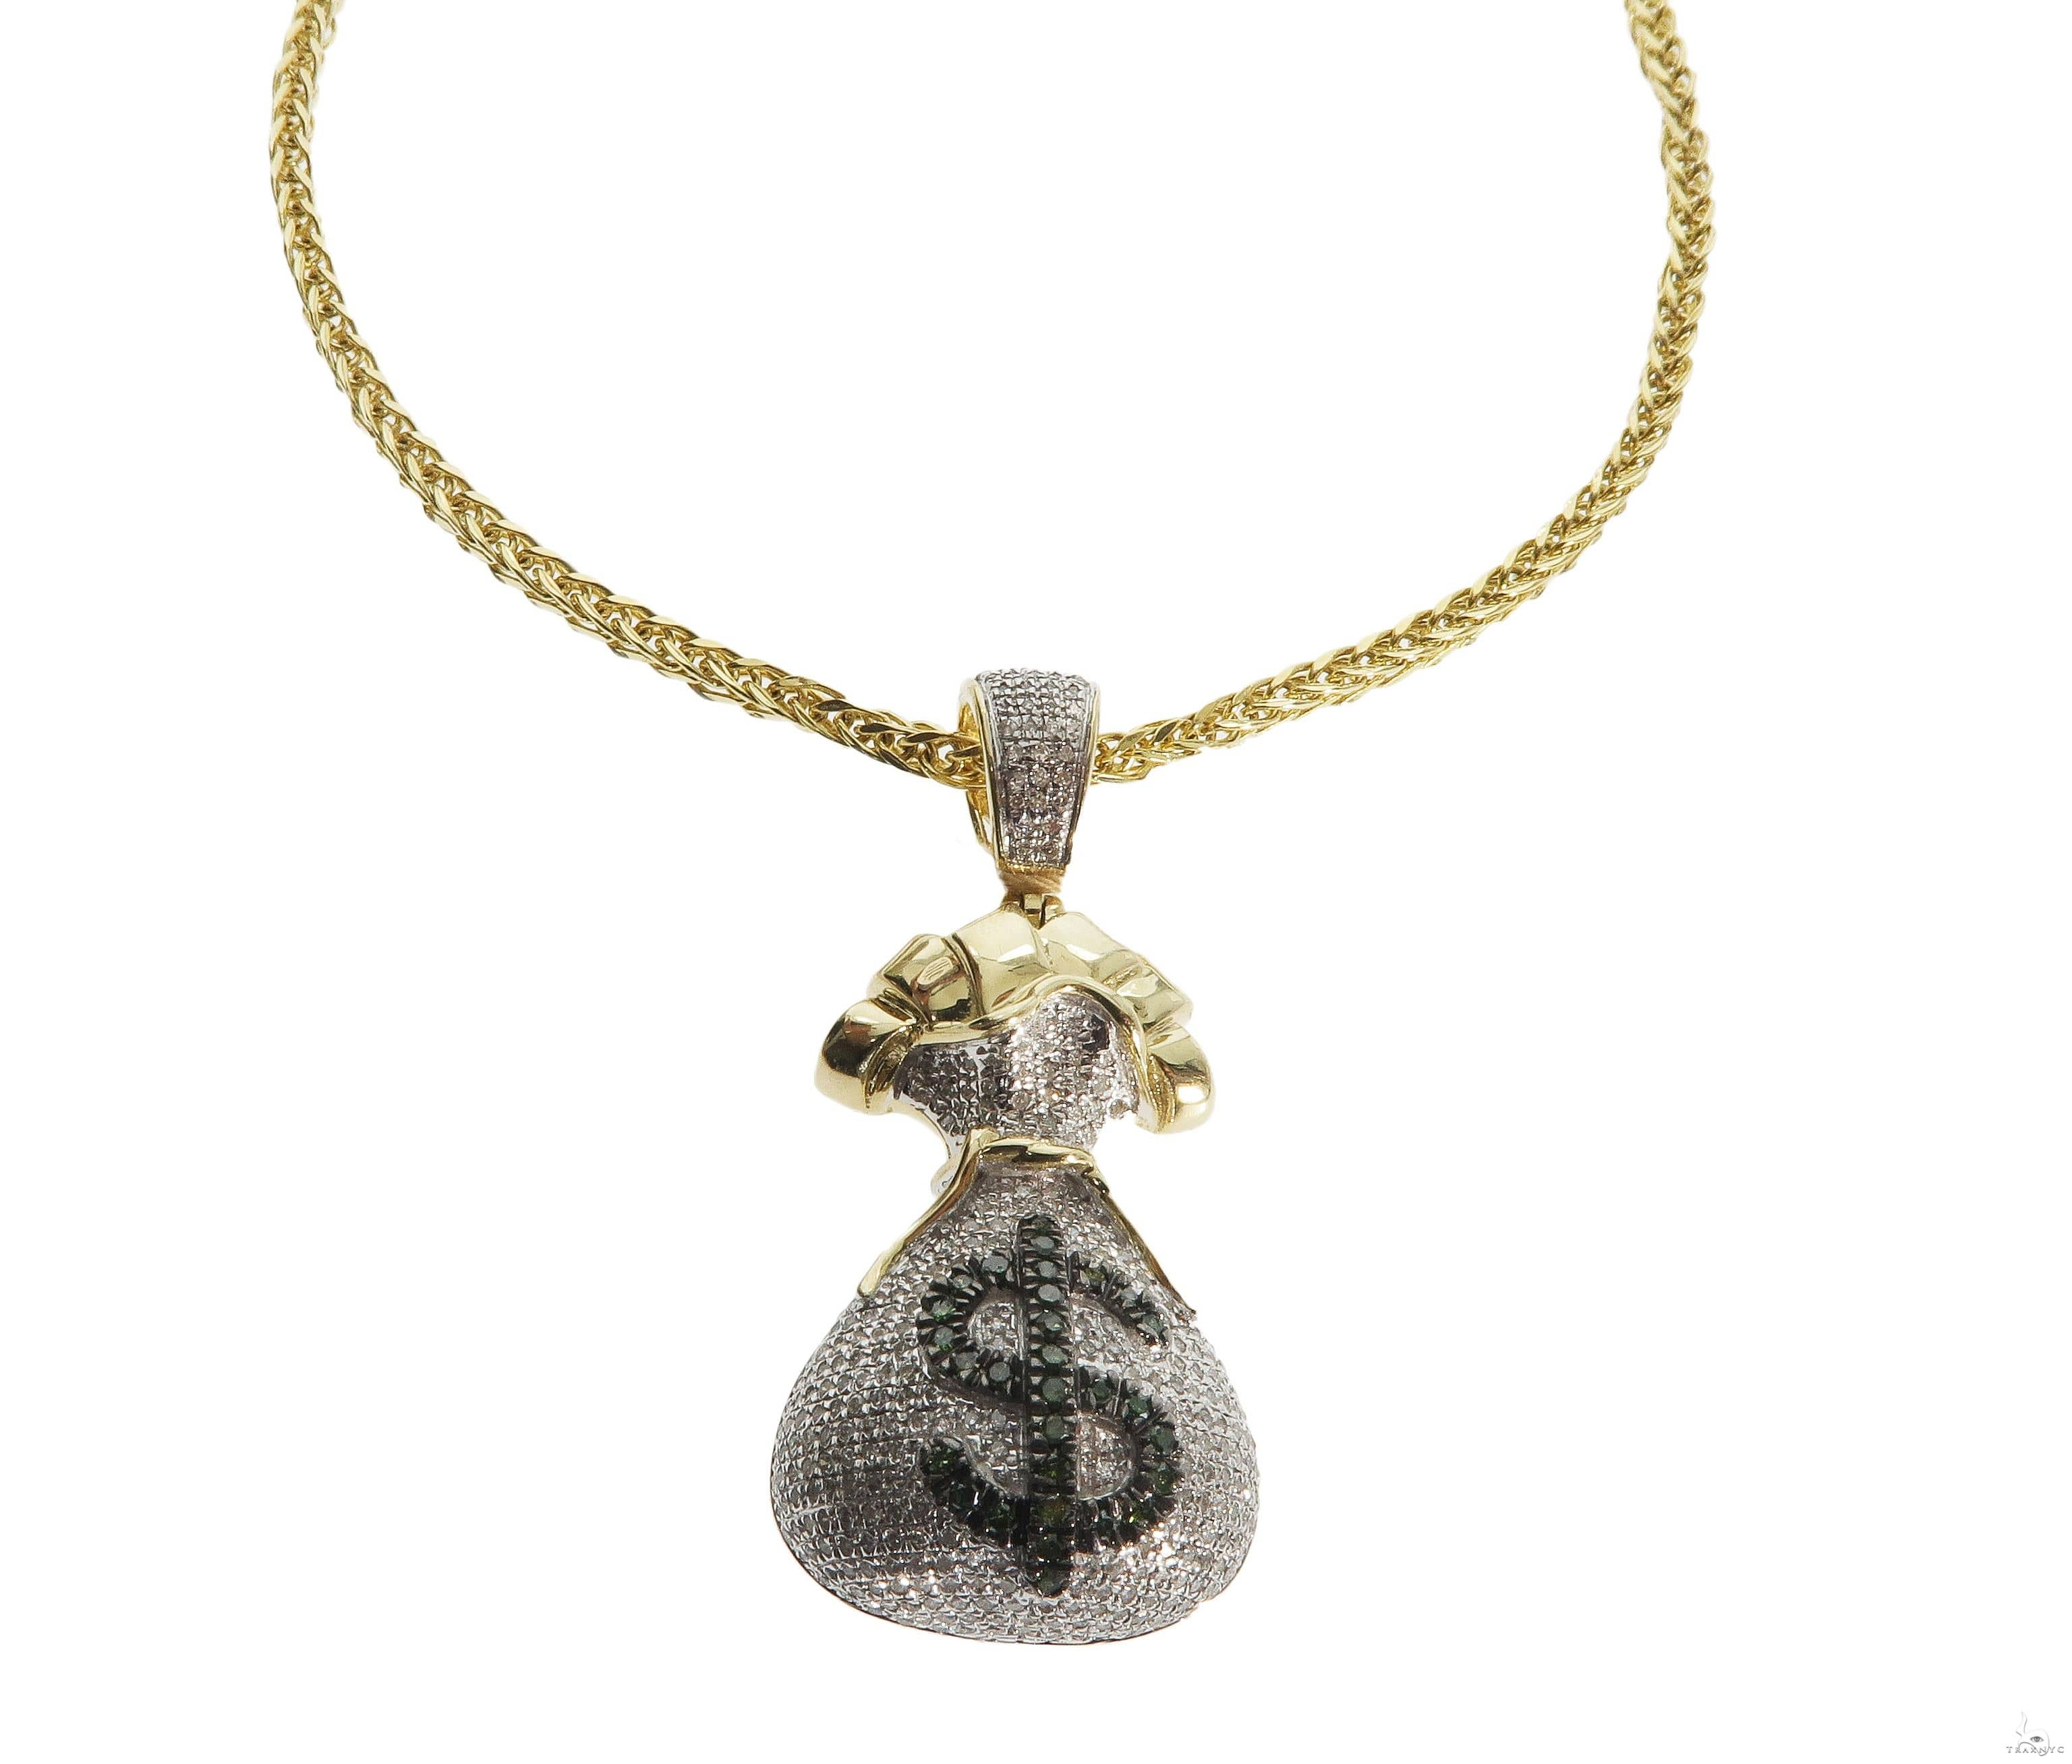 10K Gold Diamond Money Bag Dollar Sign Charm and Chain Set Metal